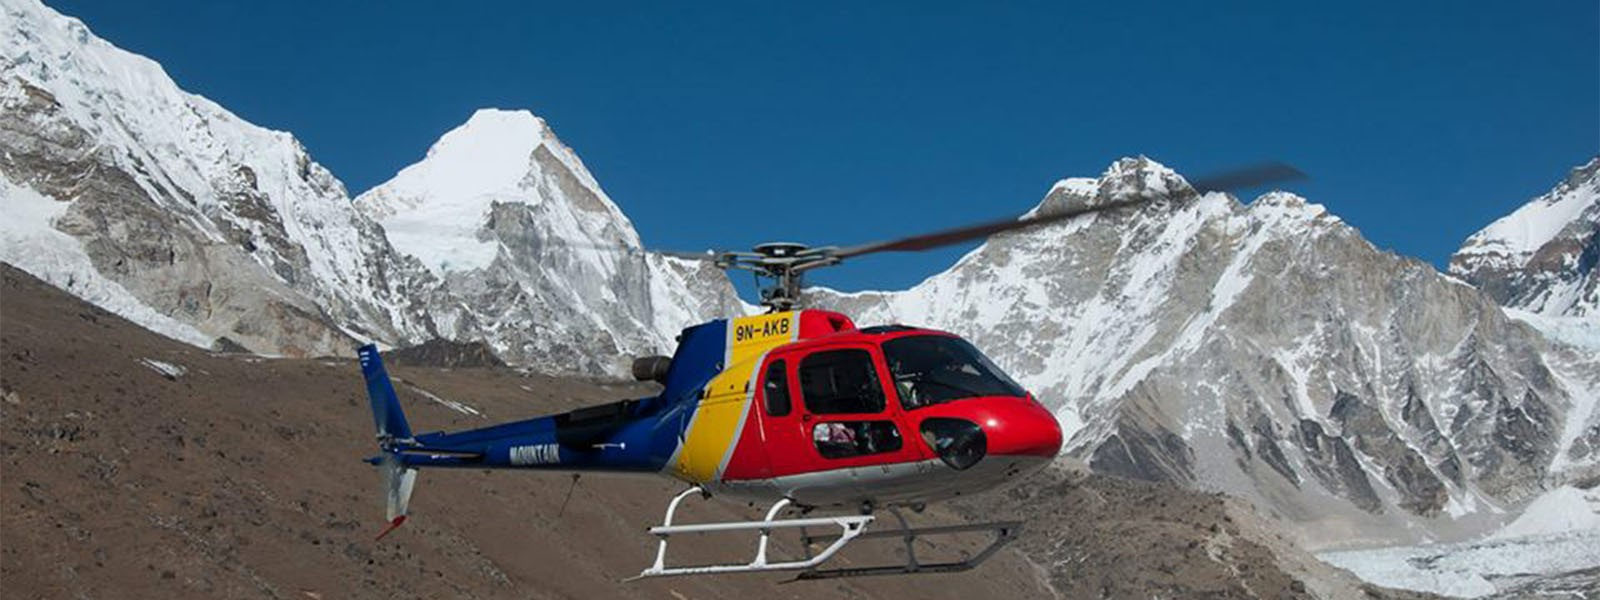 Everest Tour with Helicopter